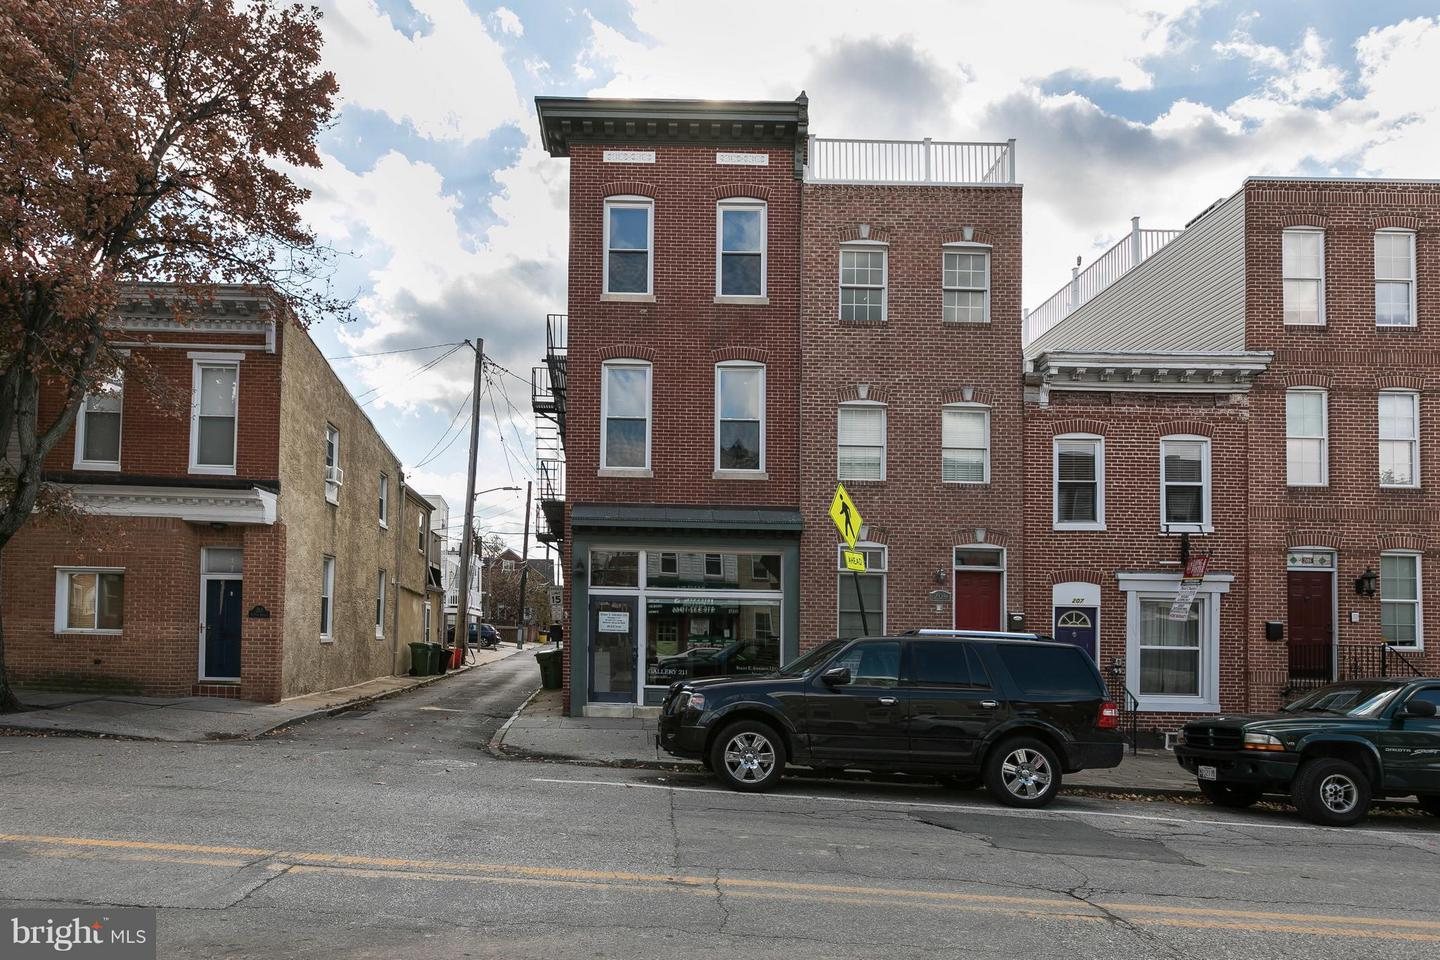 Commercial for Sale at 211 Fort Ave E Baltimore, Maryland 21230 United States